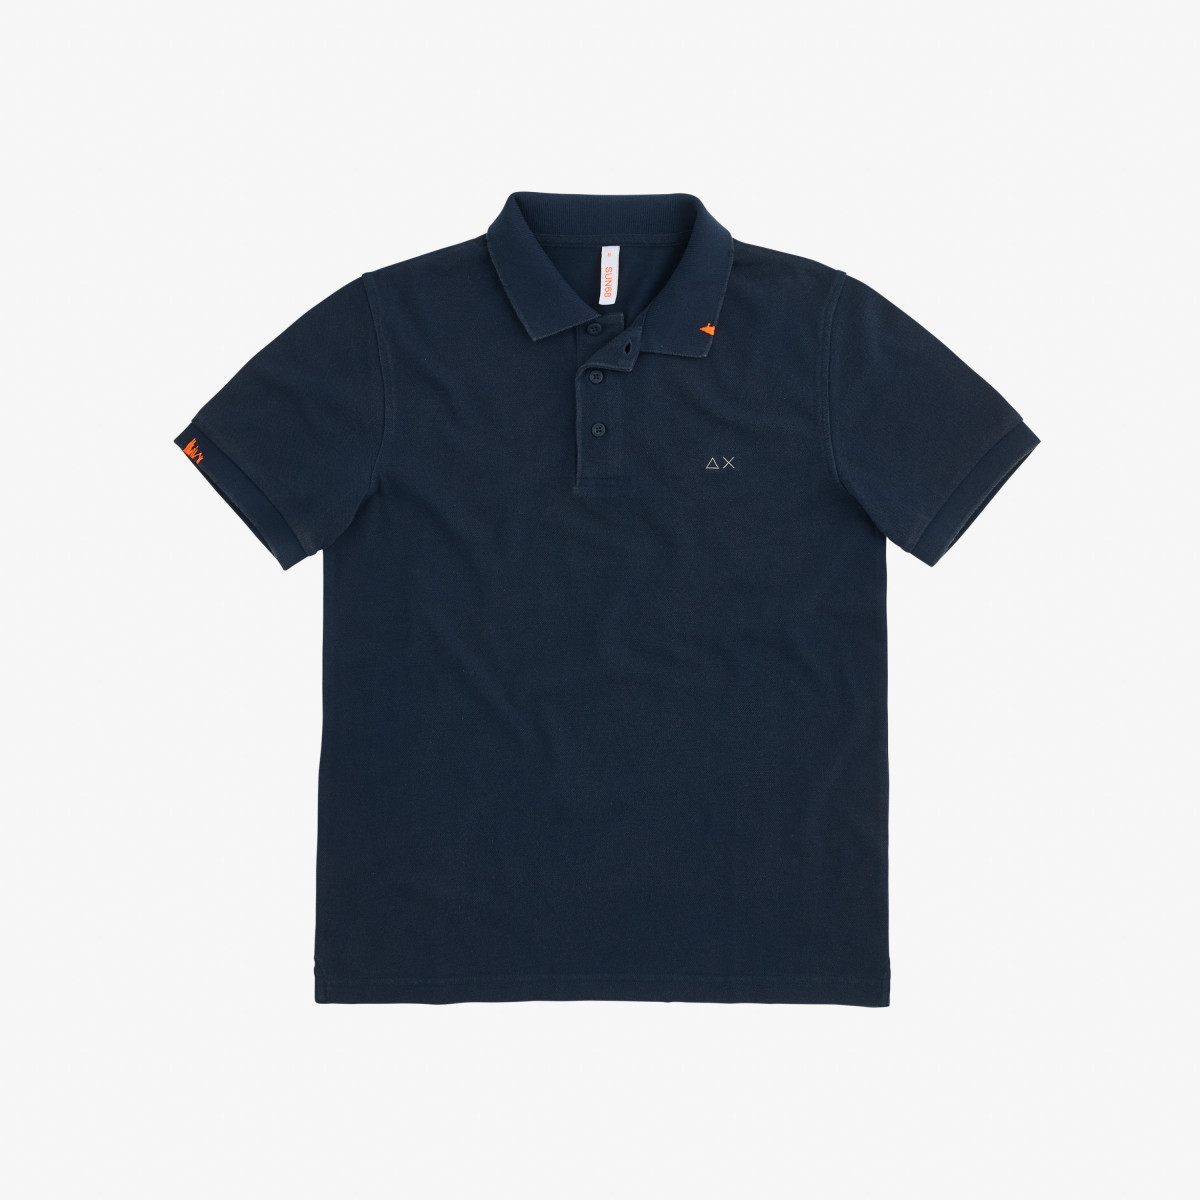 POLO VINTAGE SOLID NAVY BLUE